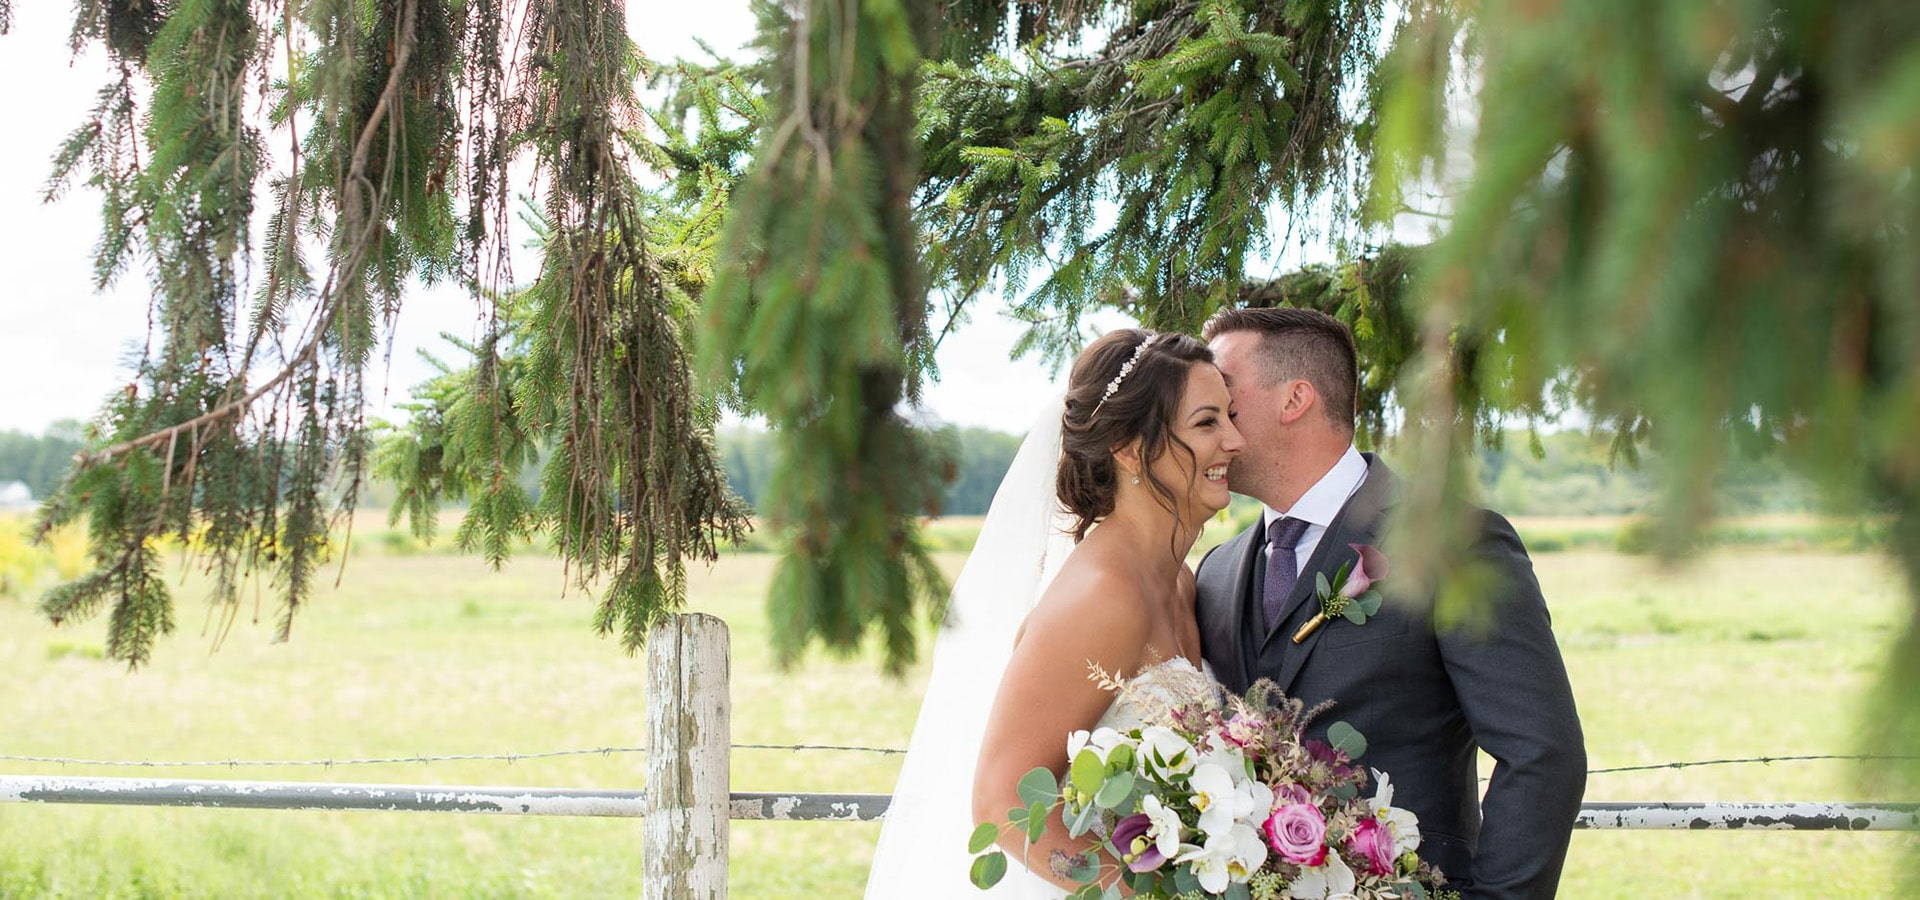 Hero image for Erica and Rob's Rustically Elegant Wedding at Maple Meadow Farm